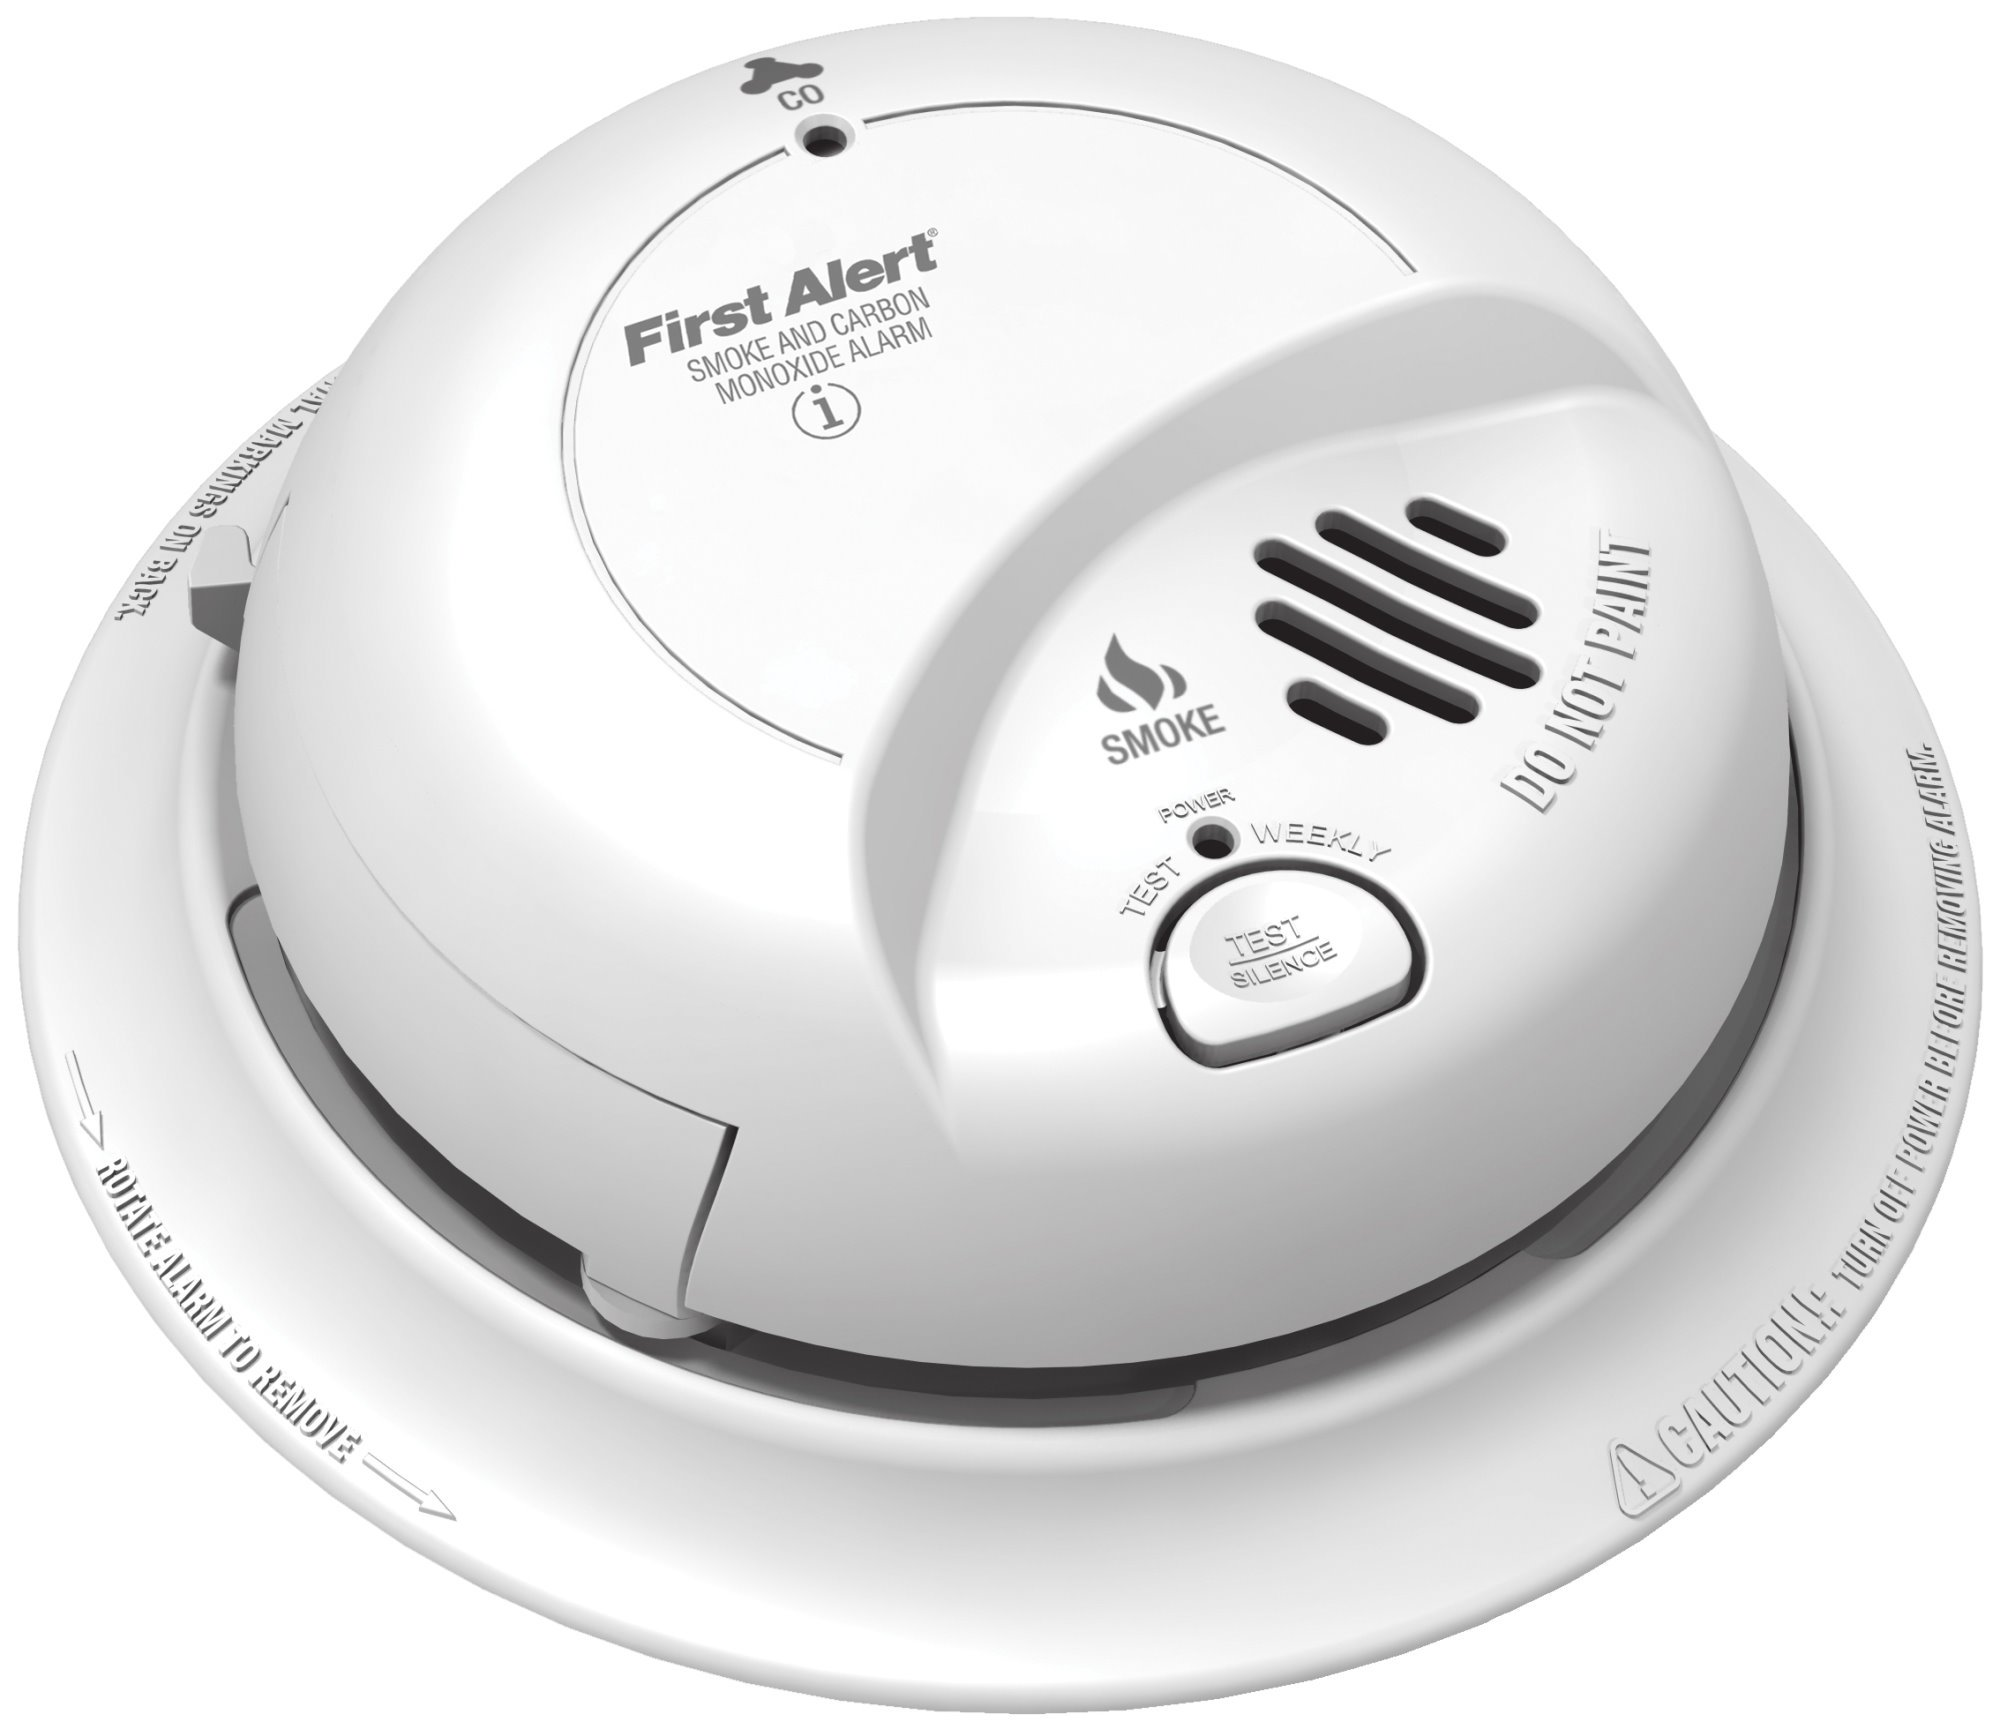 BRK First Alert SC9120B Hardwire Combination Smoke/Carbon Monoxide Alarm with Battery Backup 4 Pack by  First Alert